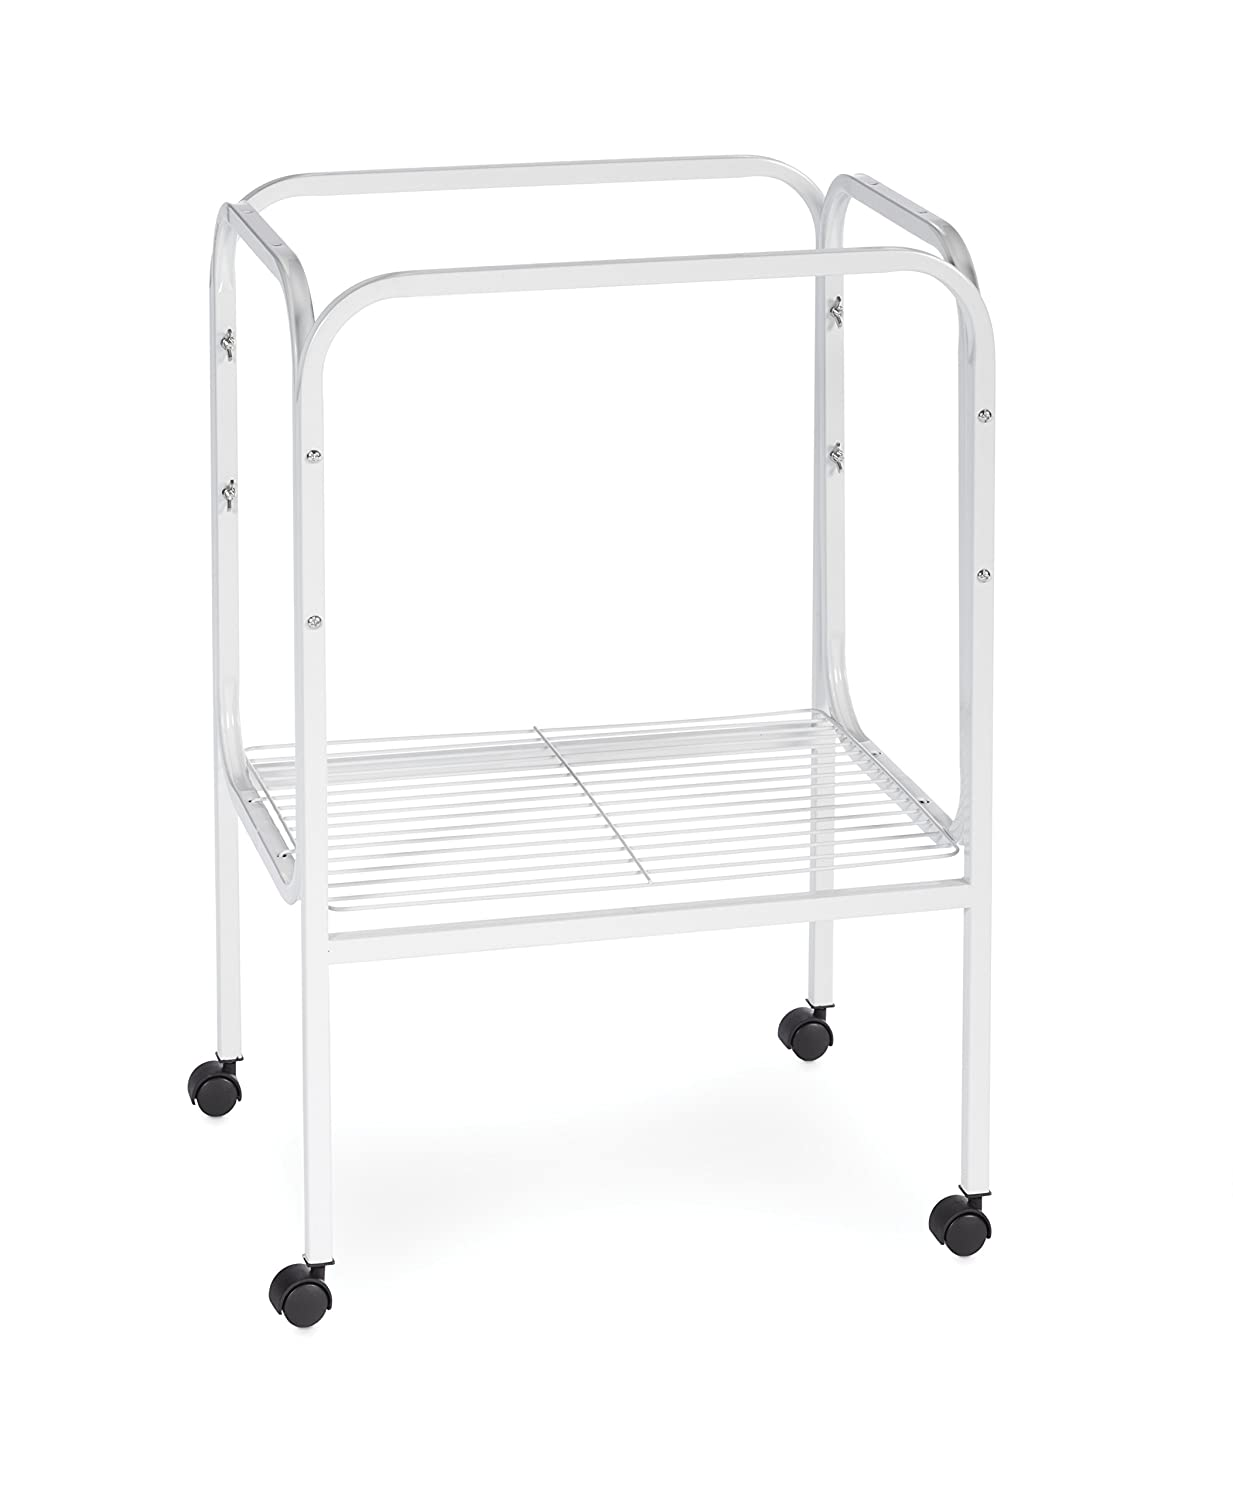 Prevue Pet Products SP444W Bird Cage Stand with Shelf, White Inc.